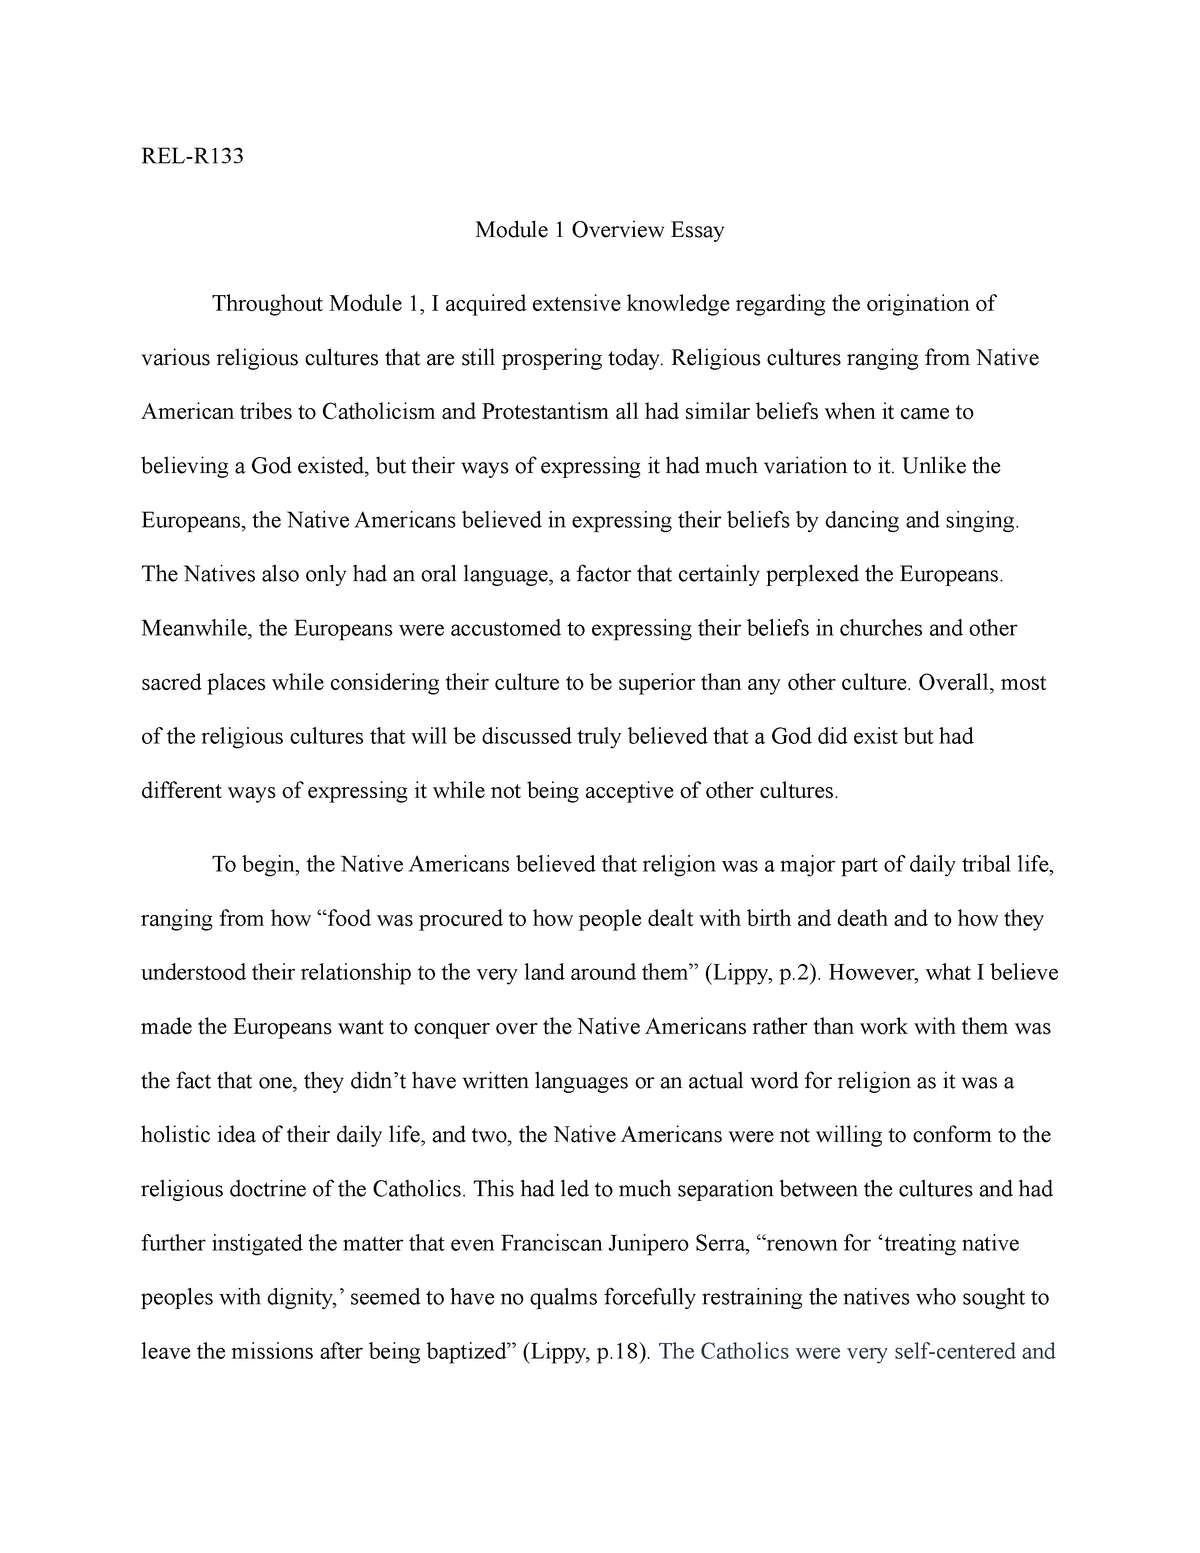 Essays on native american religious beliefs top business plan editor website for mba